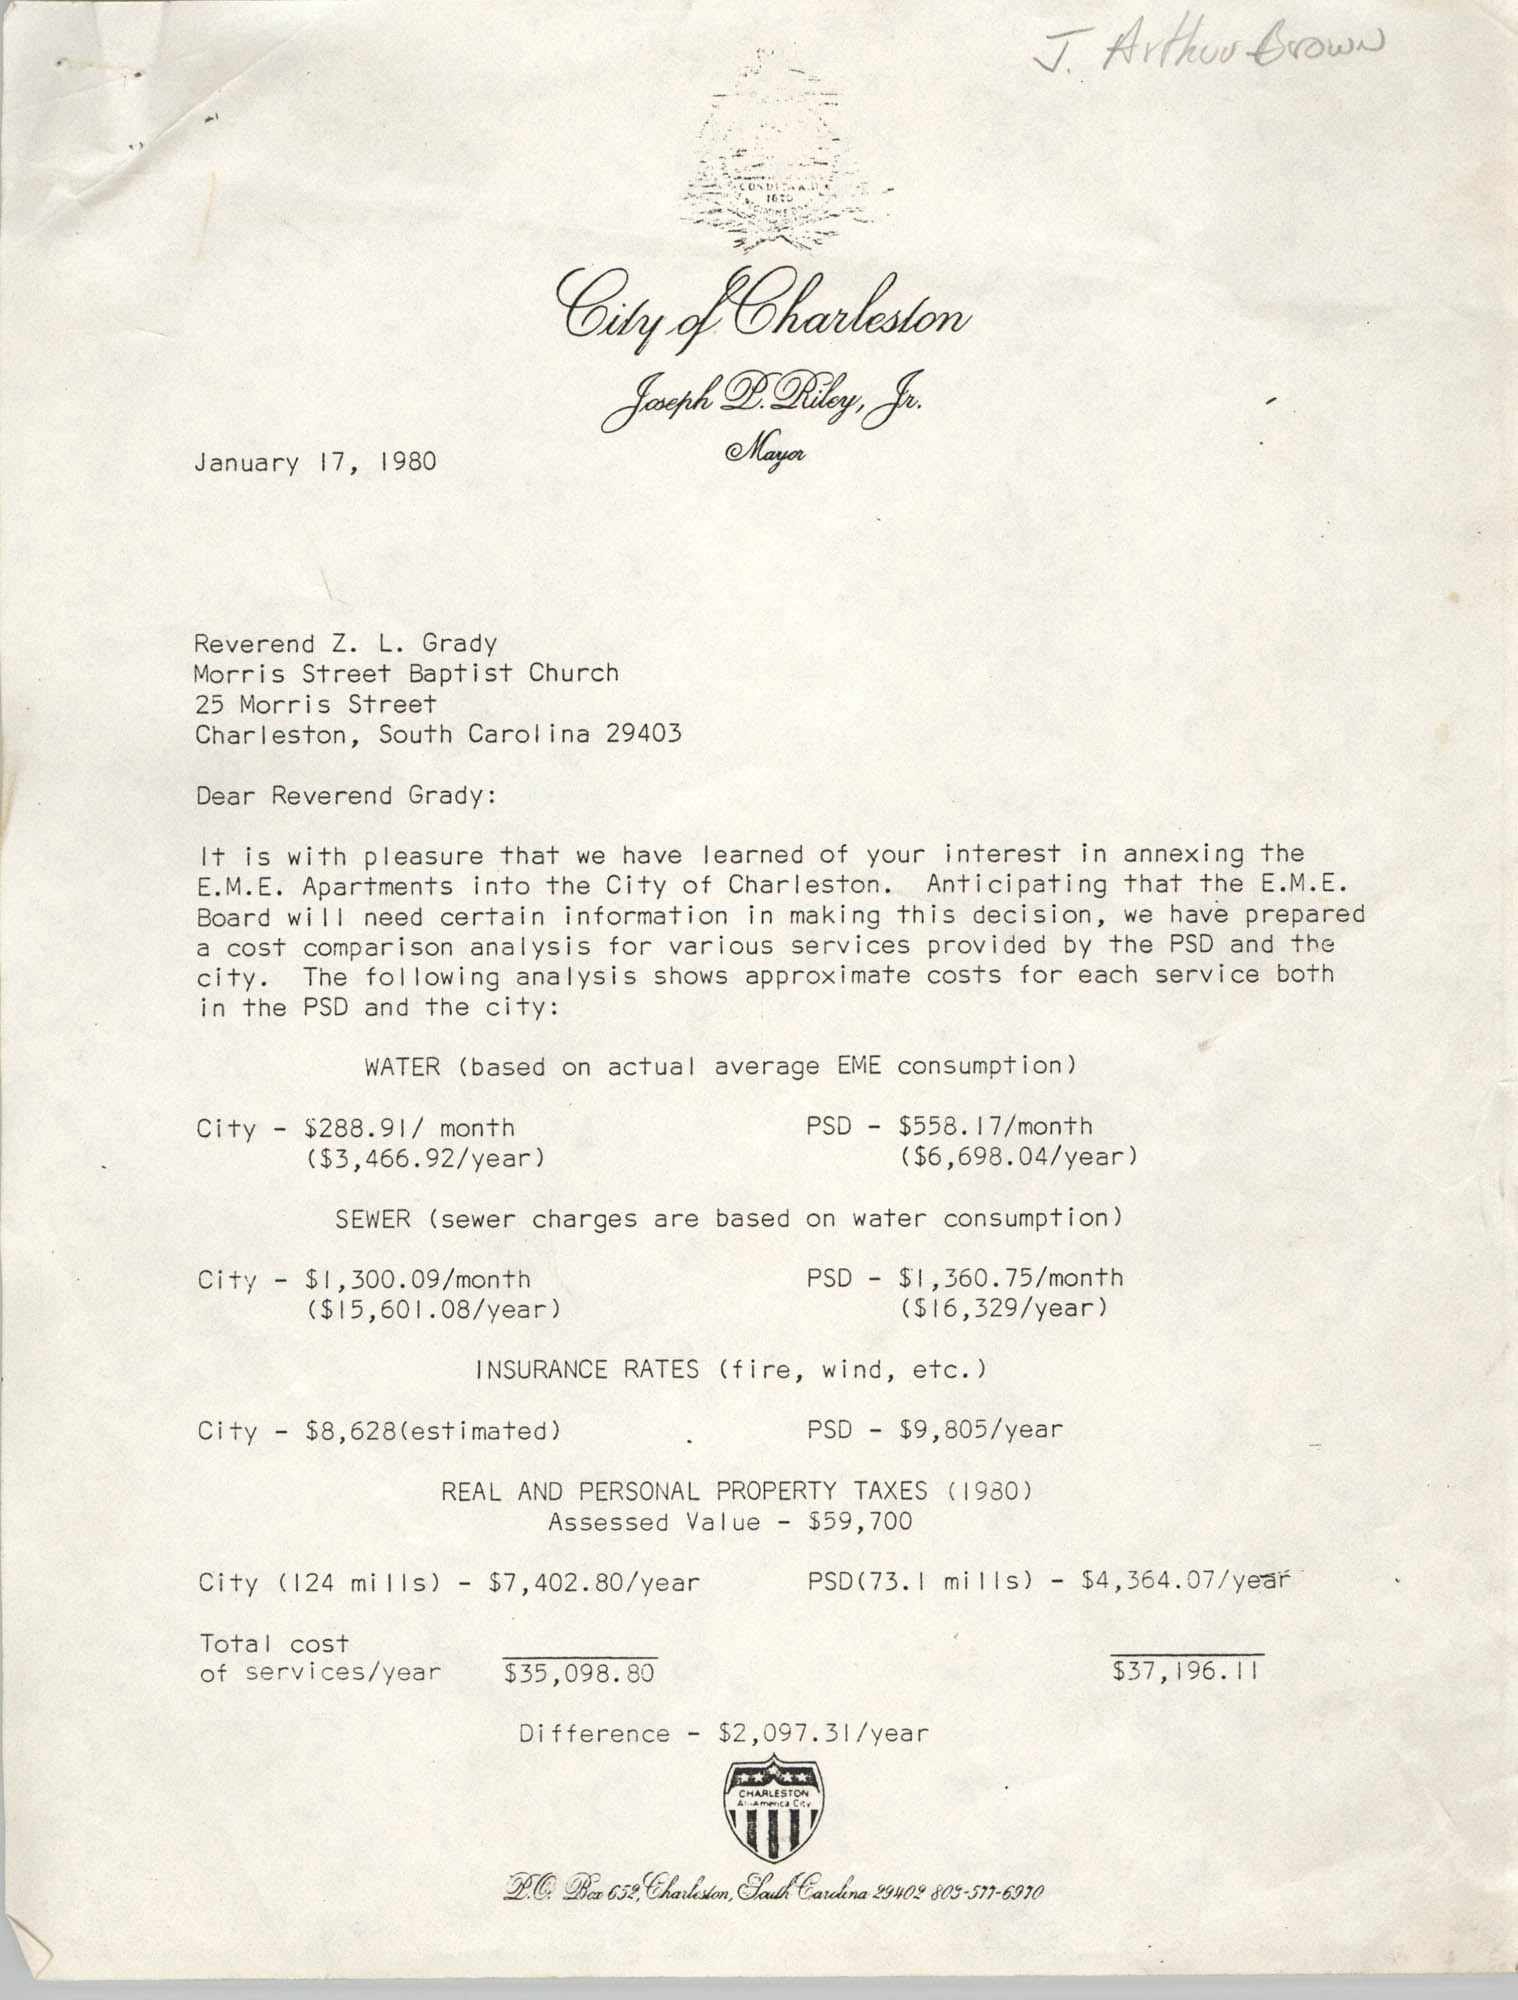 Letter from Joseph P. Riley, Jr. to Z. L. Grady, January 17, 1980